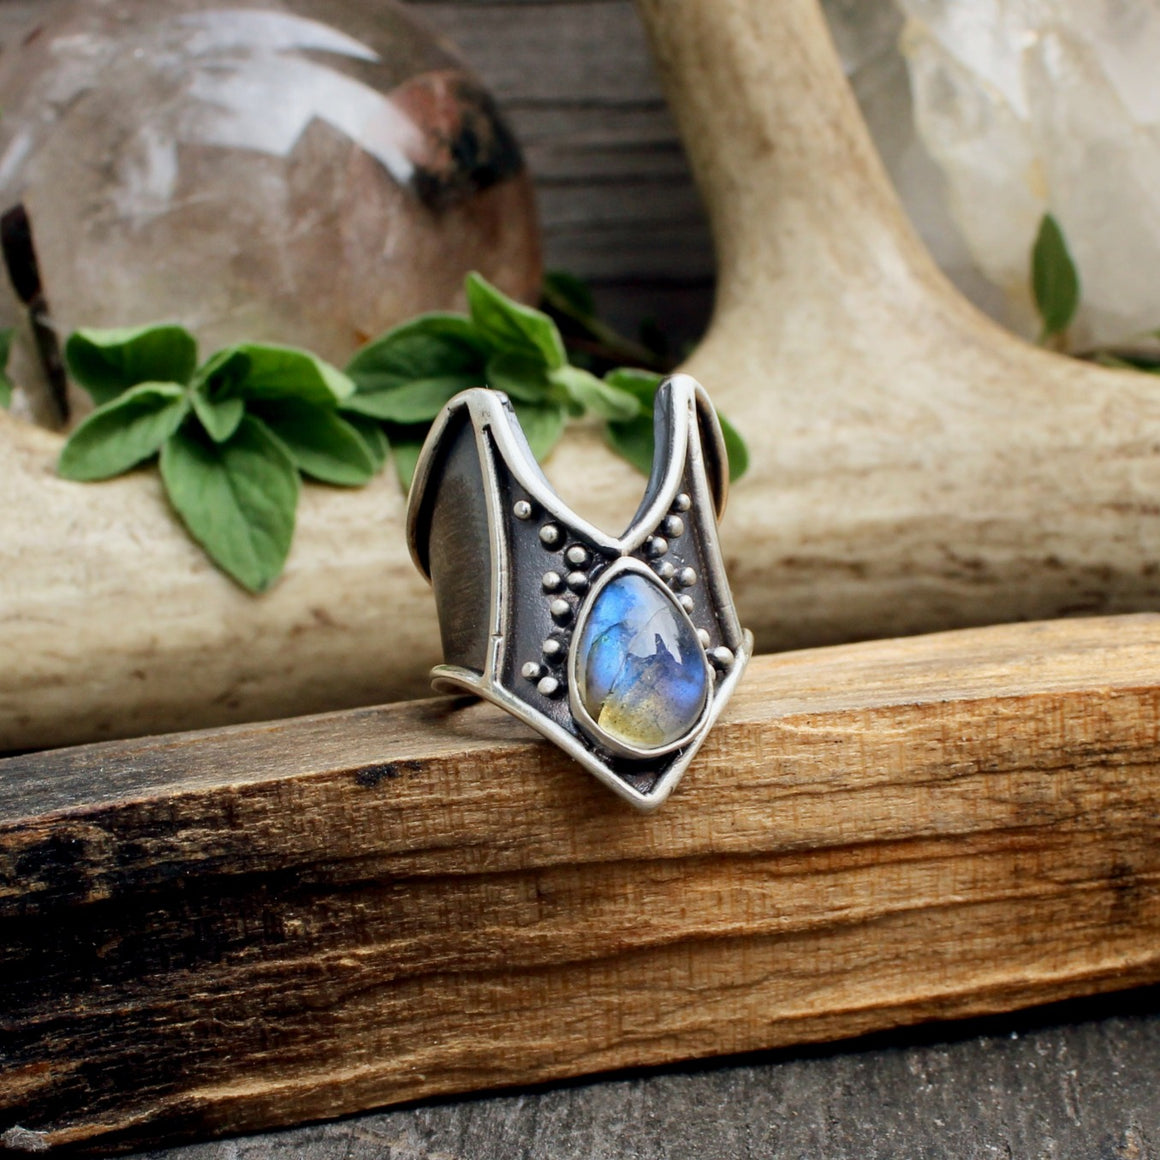 Rygel Ring // Labradorite - acid-queen-jewelry, All Products - acid-queen-jewelry, vendor-unknown - acid-queen-jewelry,  Acid Queen Jewelry - acid-queen-jewelry